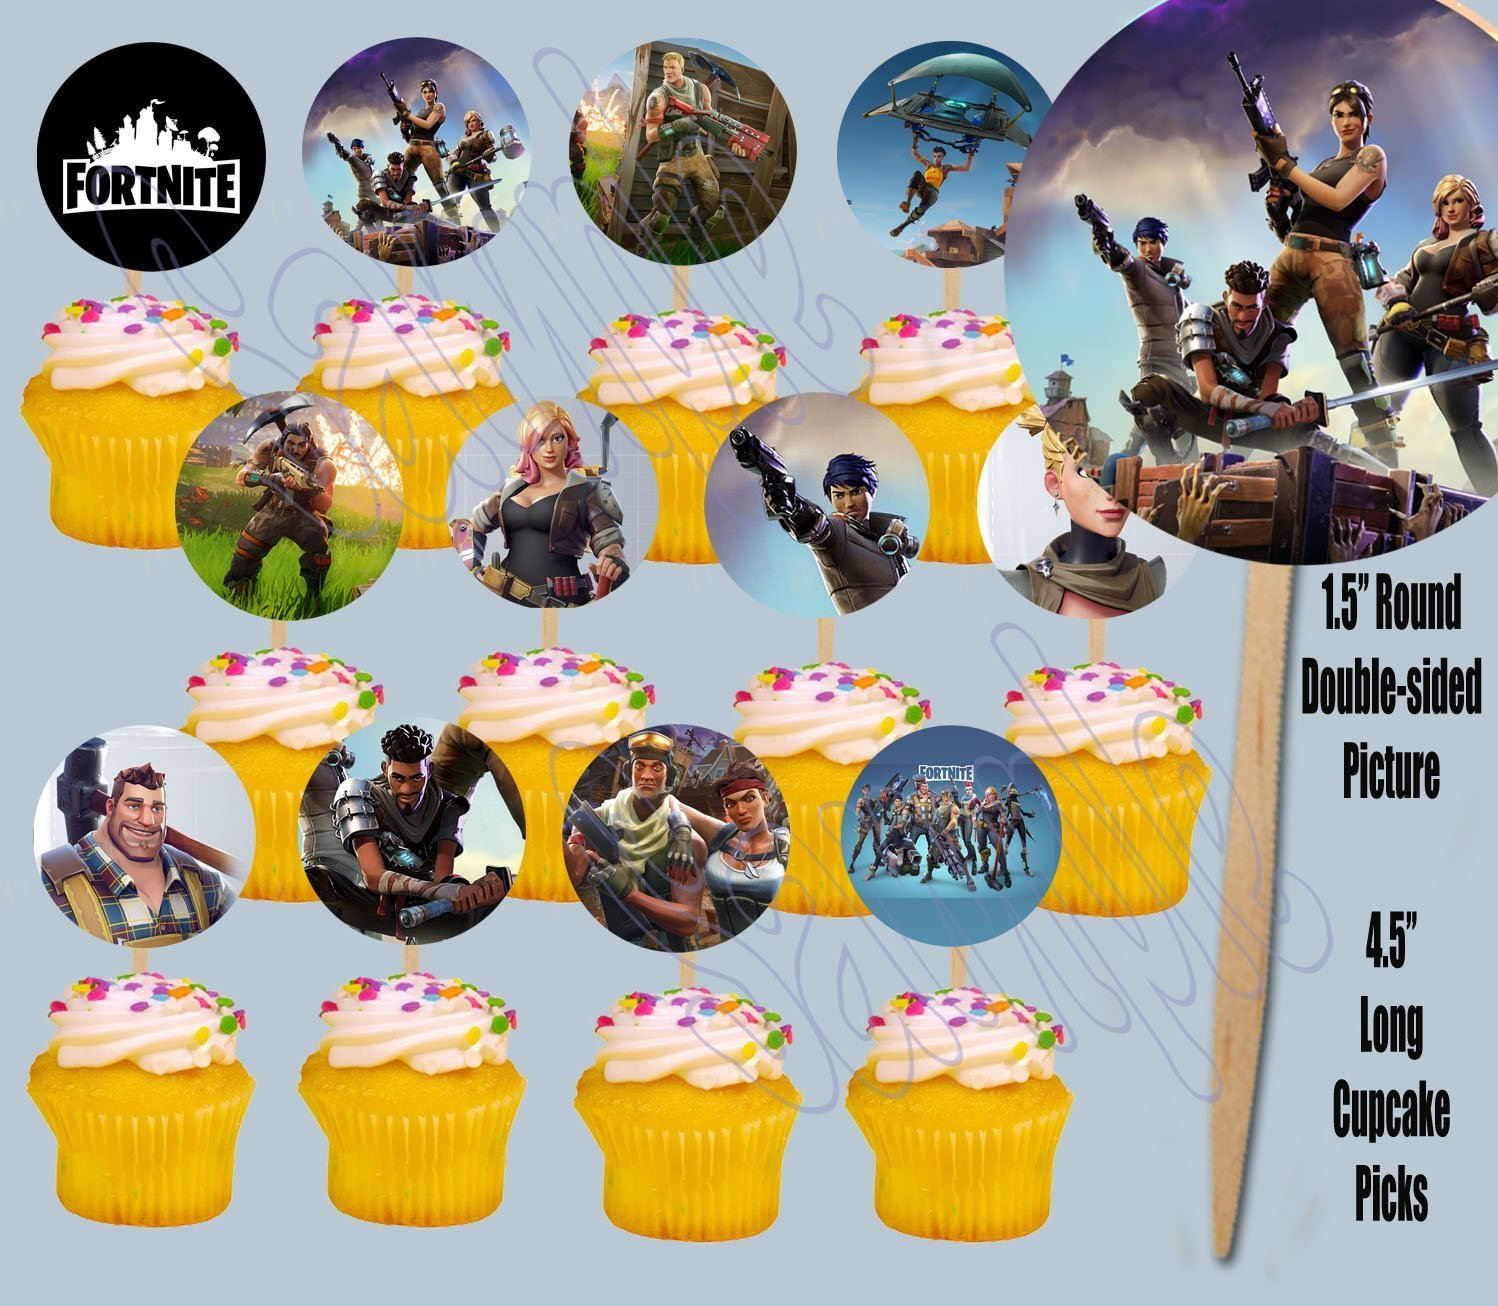 FORTNITE Cupcake Picks Double-sided Images Cake Topper -12, Video Game Truck Party